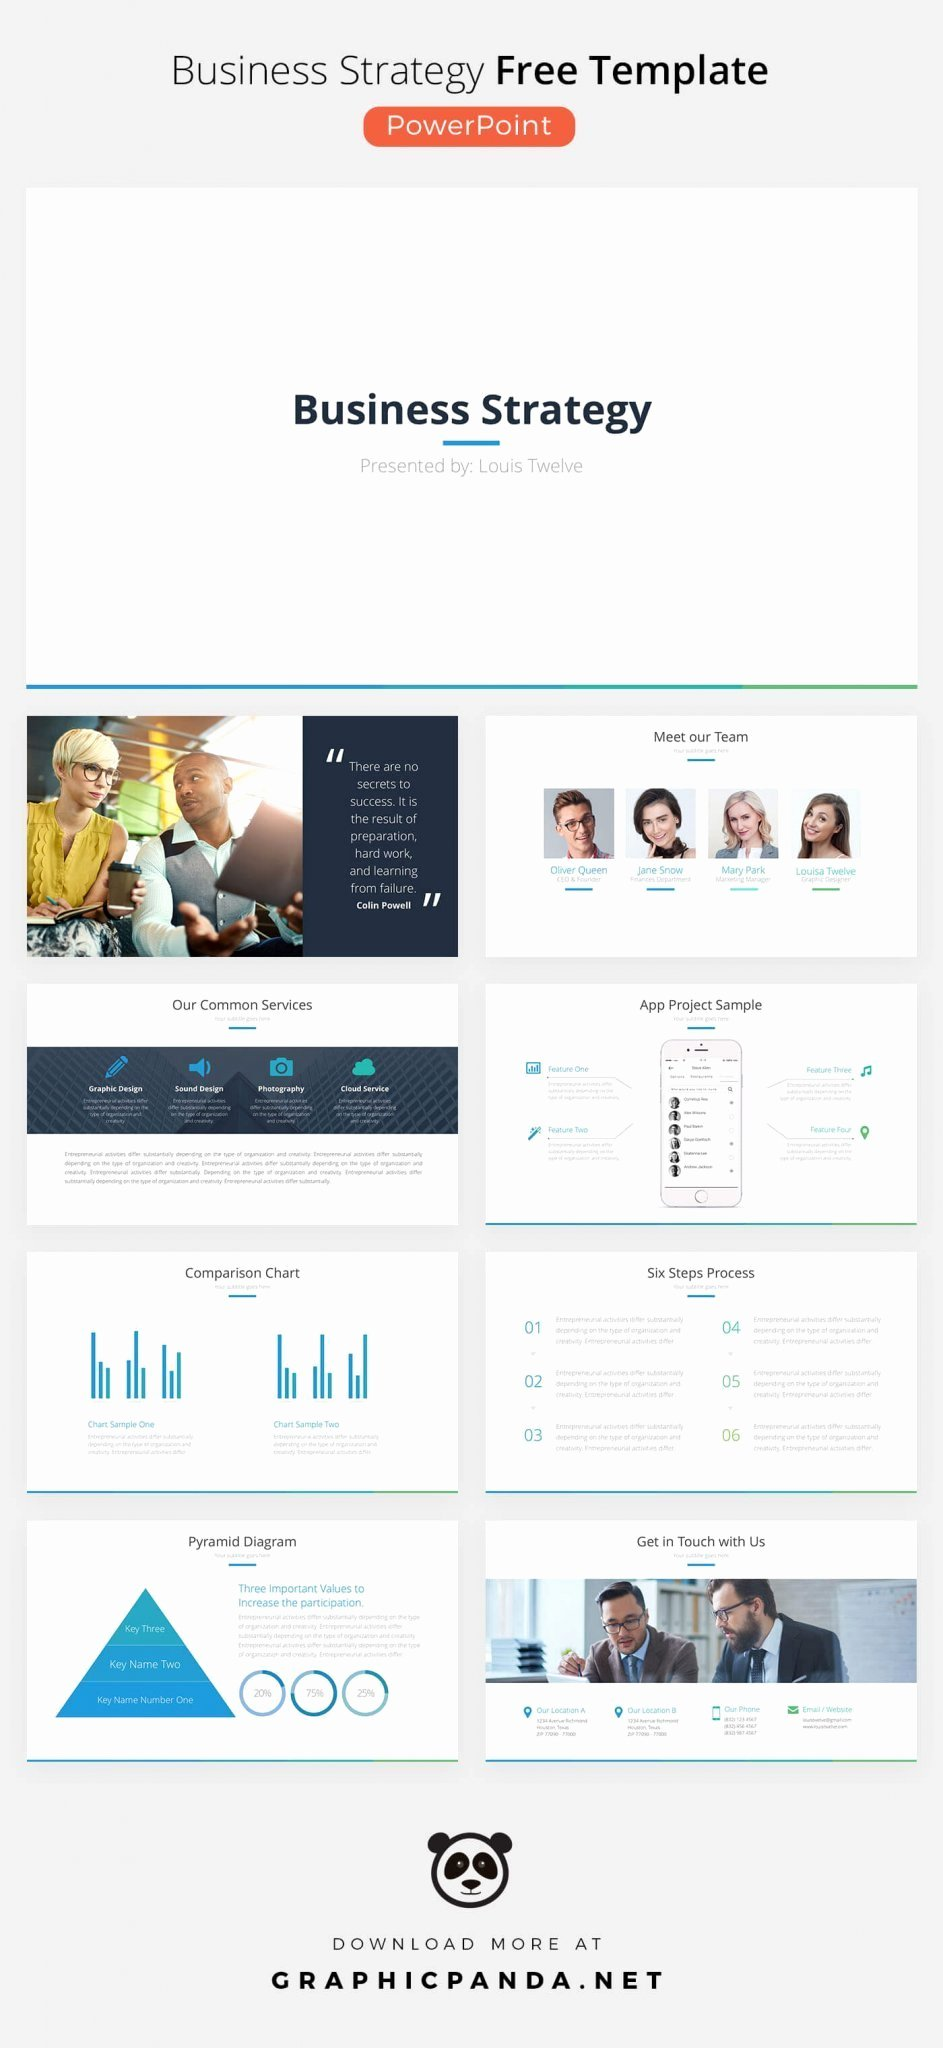 Strat Plan Powerpoint Template Unique Business Strategy Free Powerpoint Template Ppt Pptx